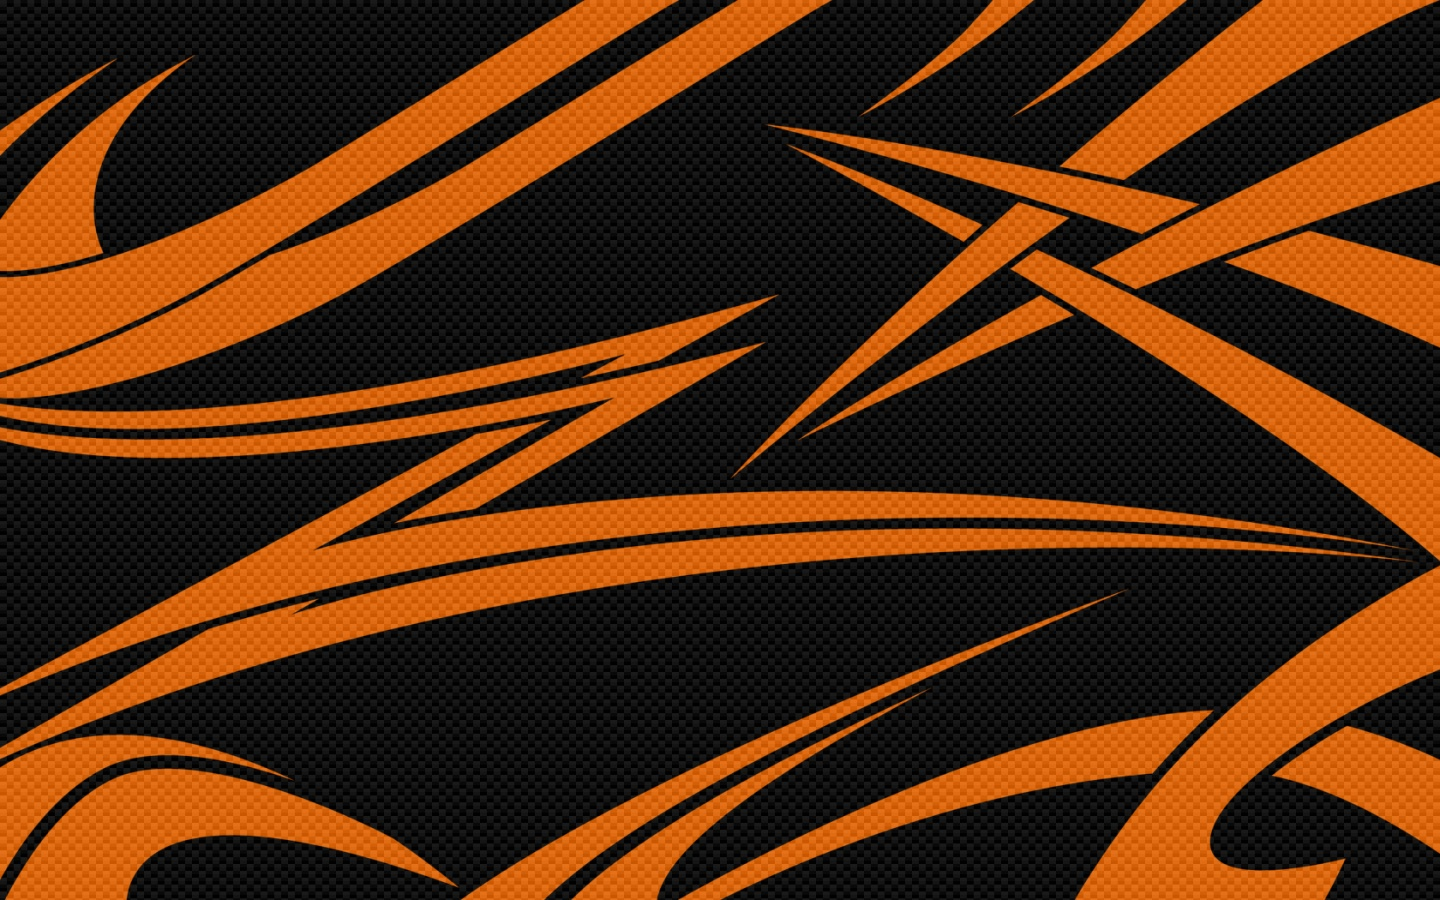 http://1.bp.blogspot.com/_2UbsSBz9ckE/TFsVME68COI/AAAAAAAABTg/j_u8NmIdnDE/s1600/black-&-orange-carbon-wallpapers_1440x900.jpg